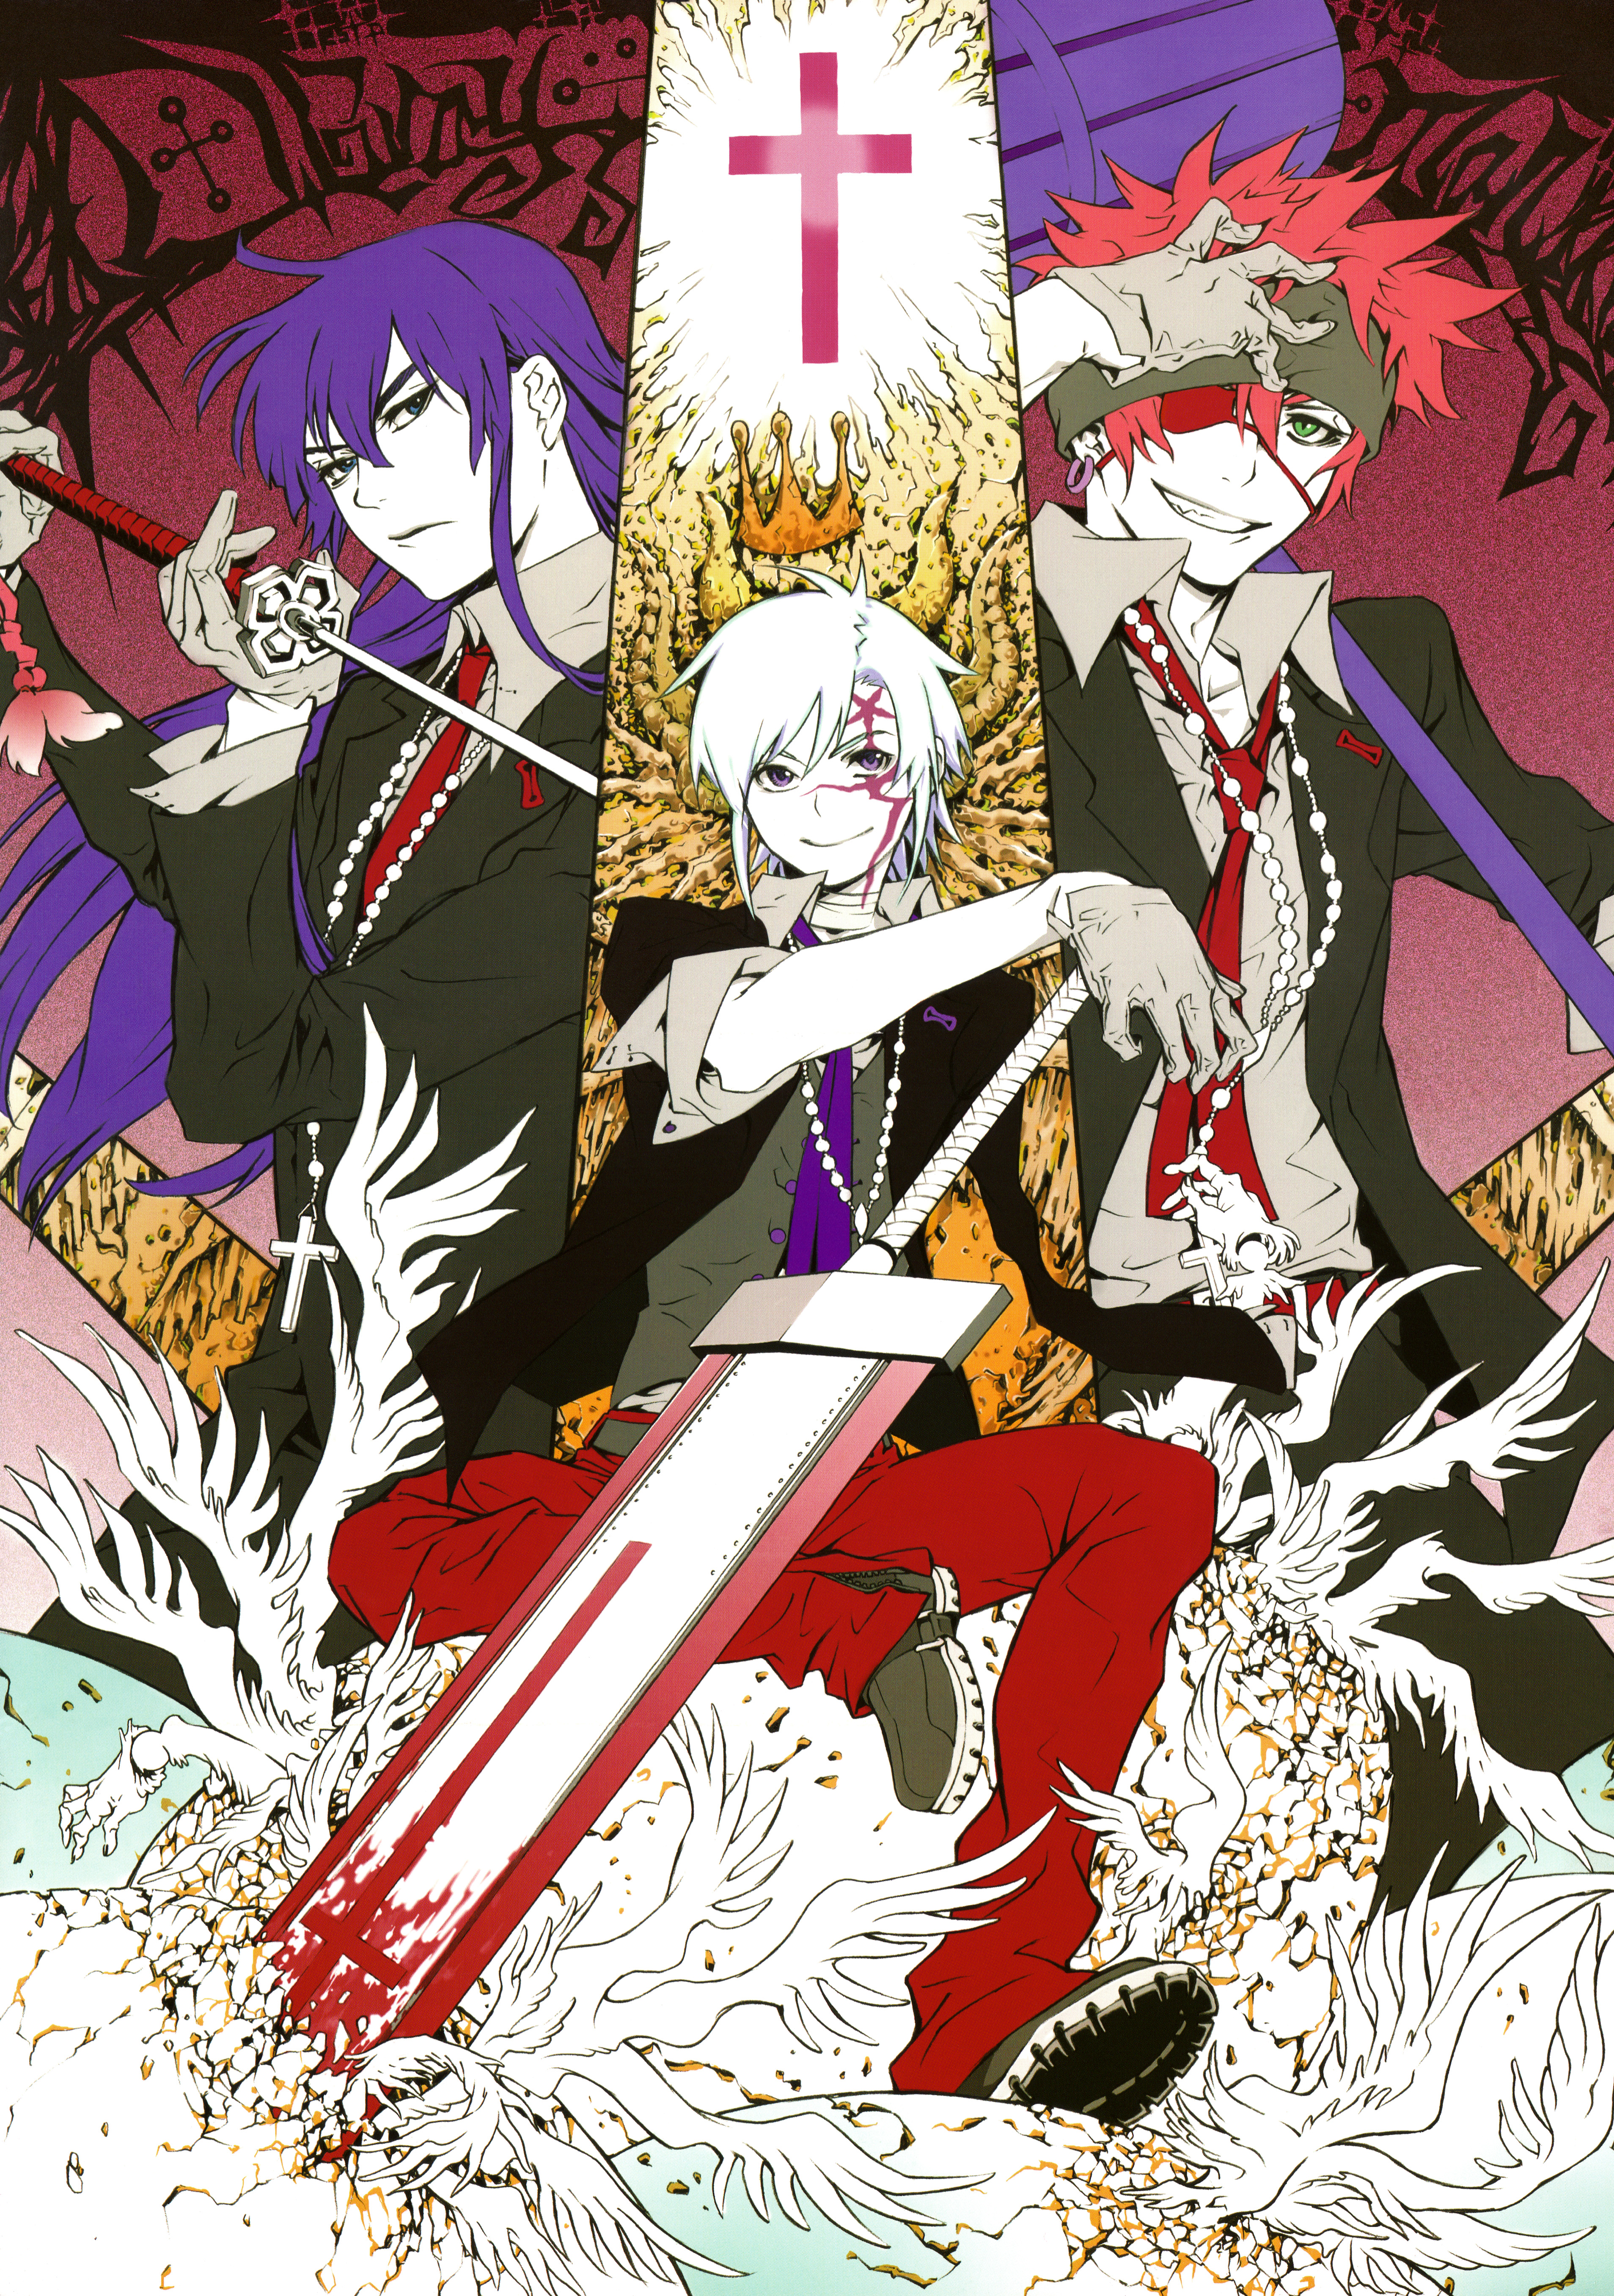 D gray man zerochan anime image board - D gray man images ...